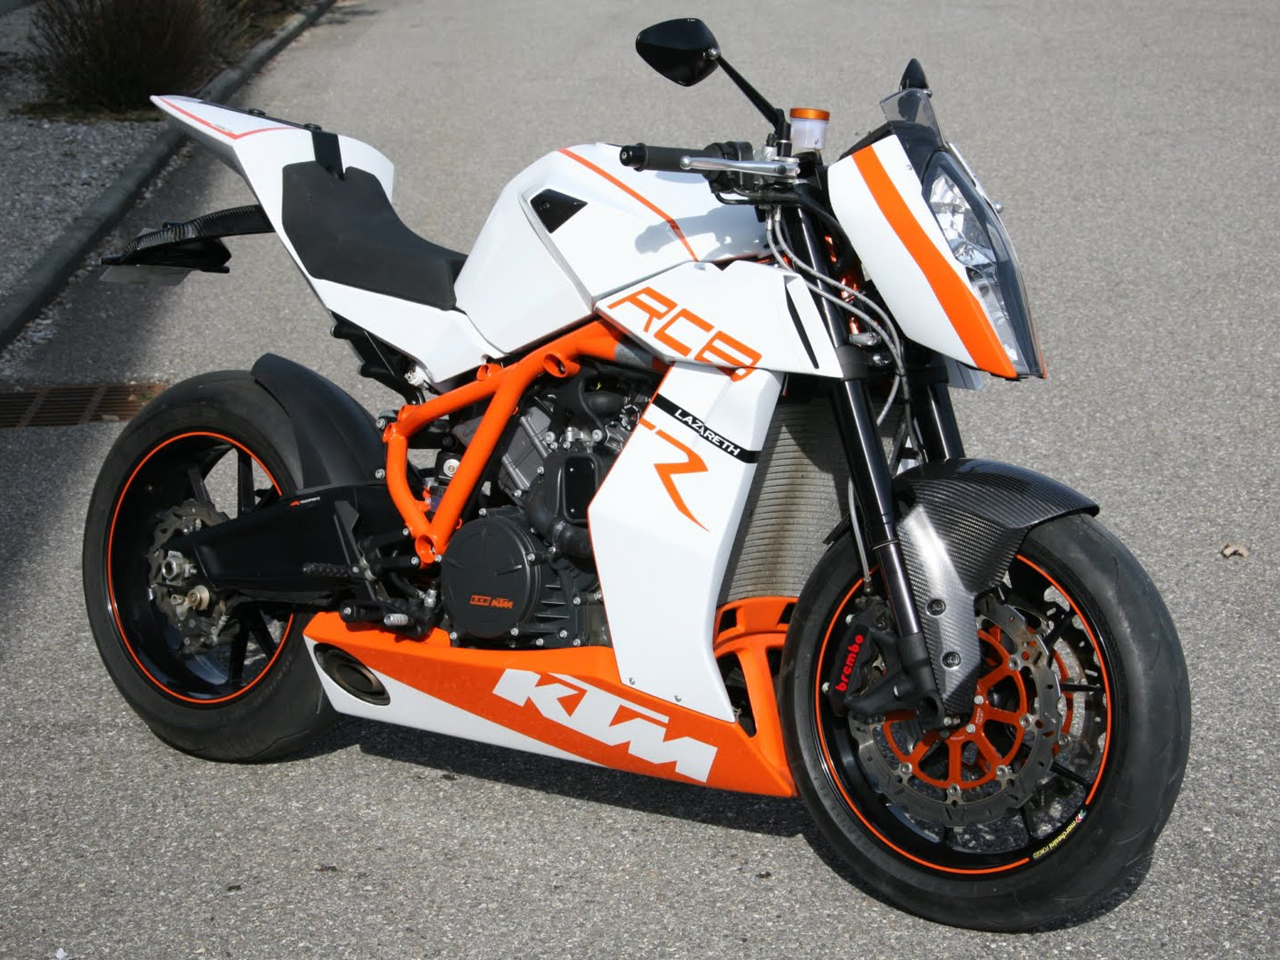 street bike ktm rc8 street bike by lazarethmotorcycletuned